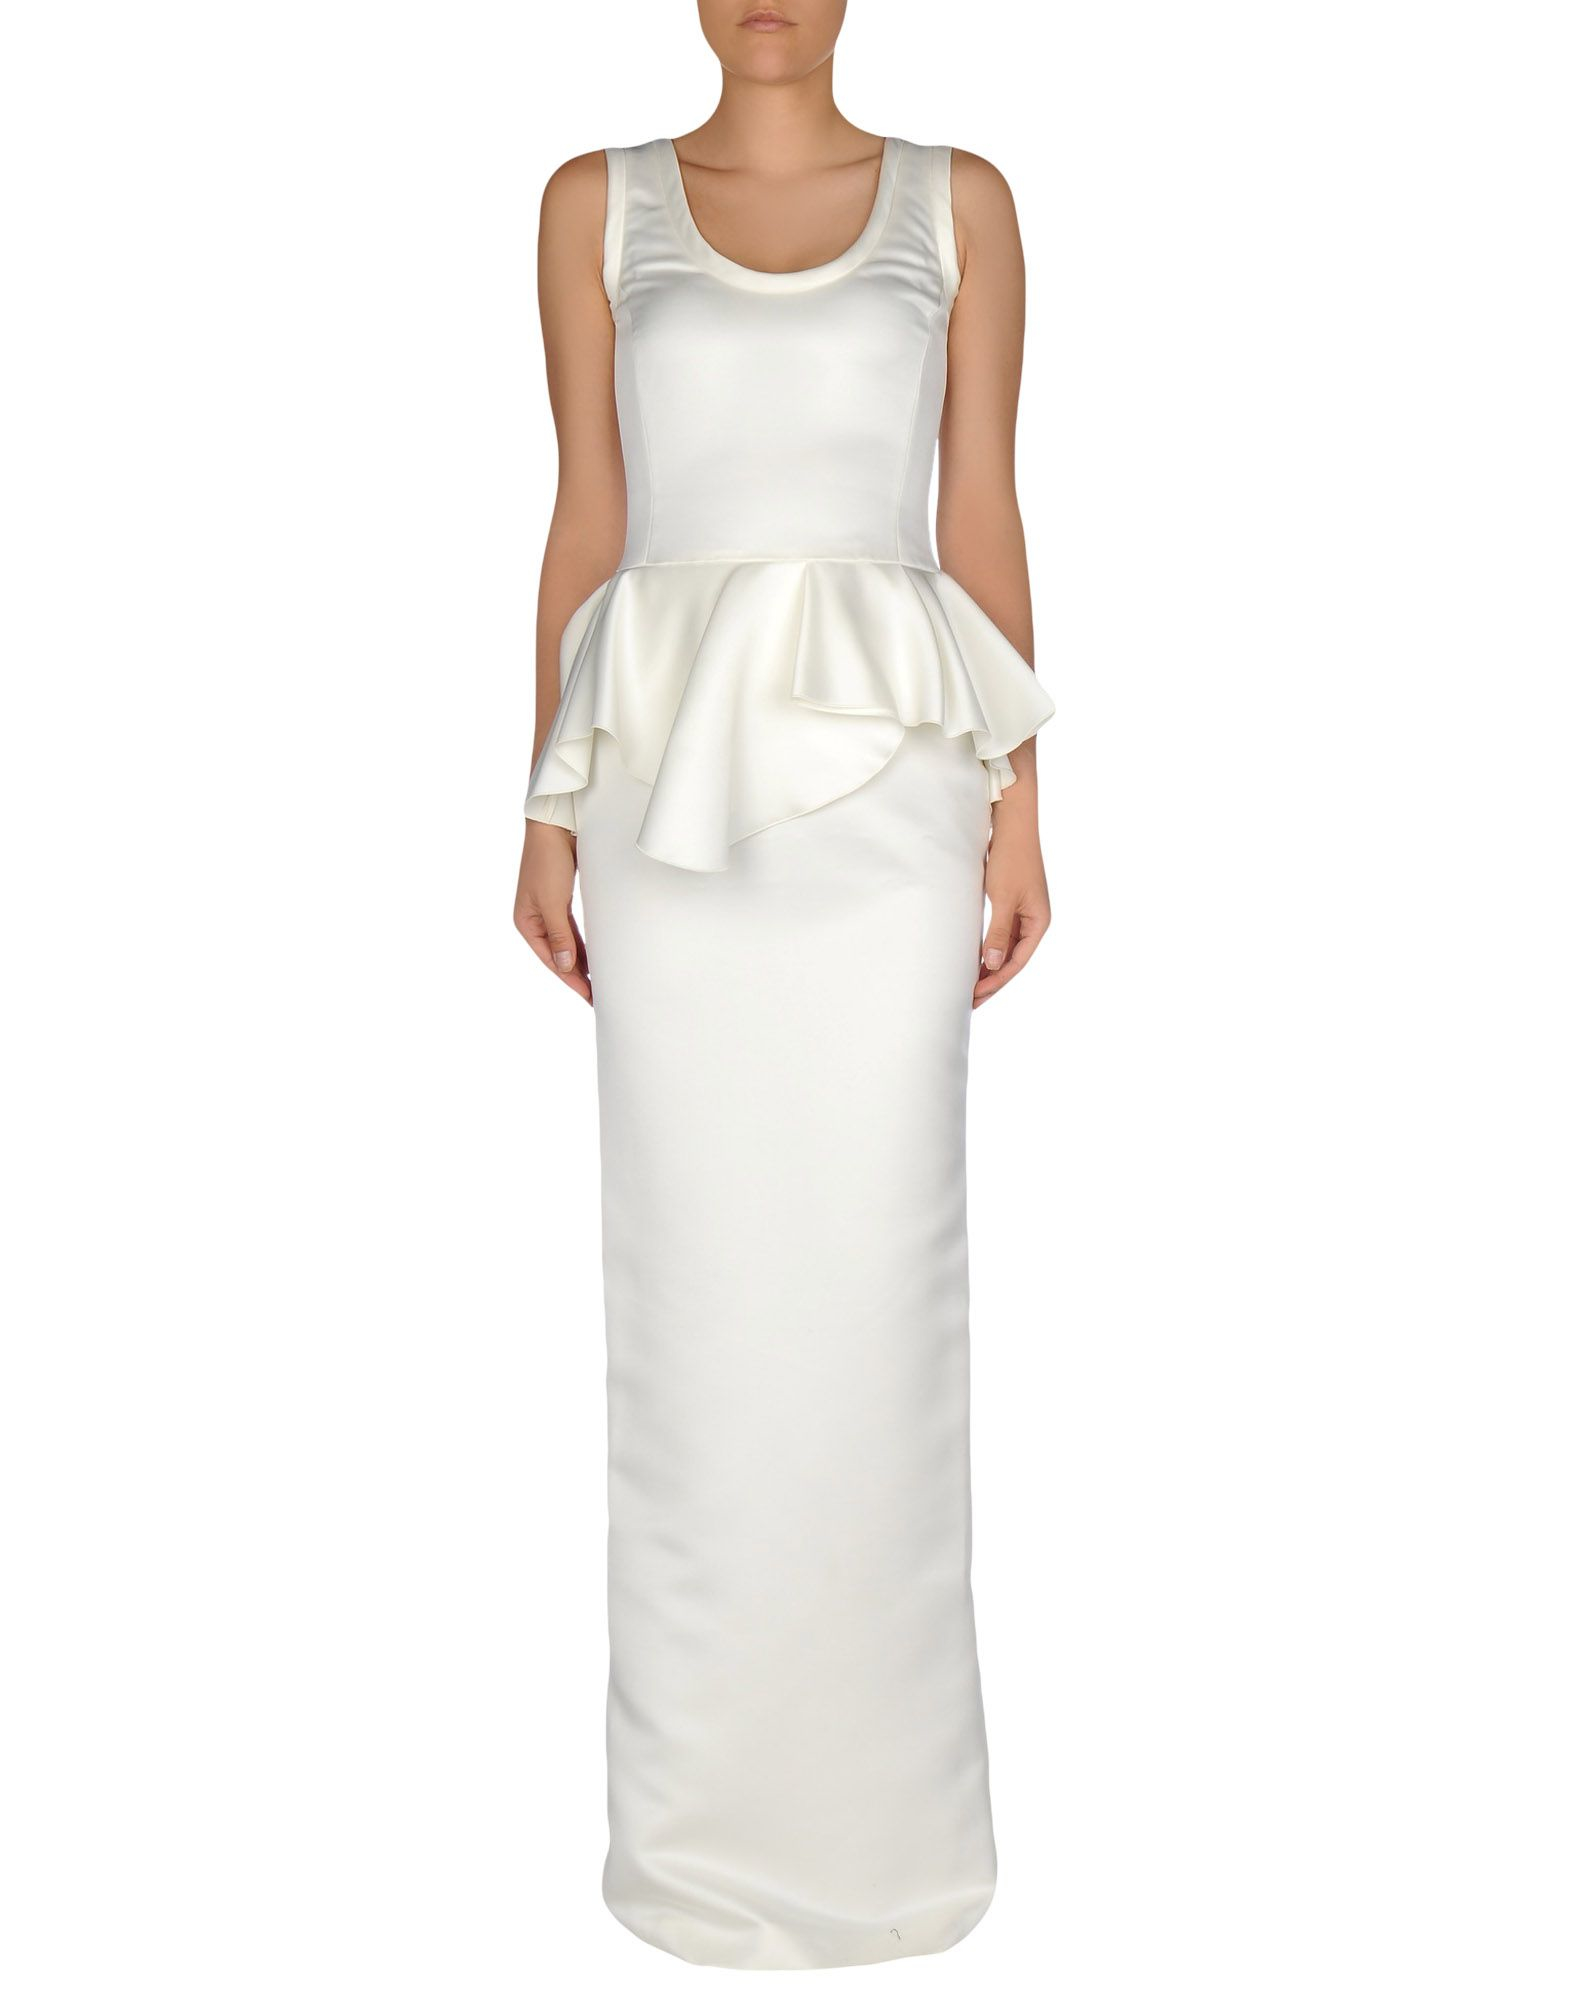 Long Lyst In Rolf White Viktor amp; Dress qPtPARw